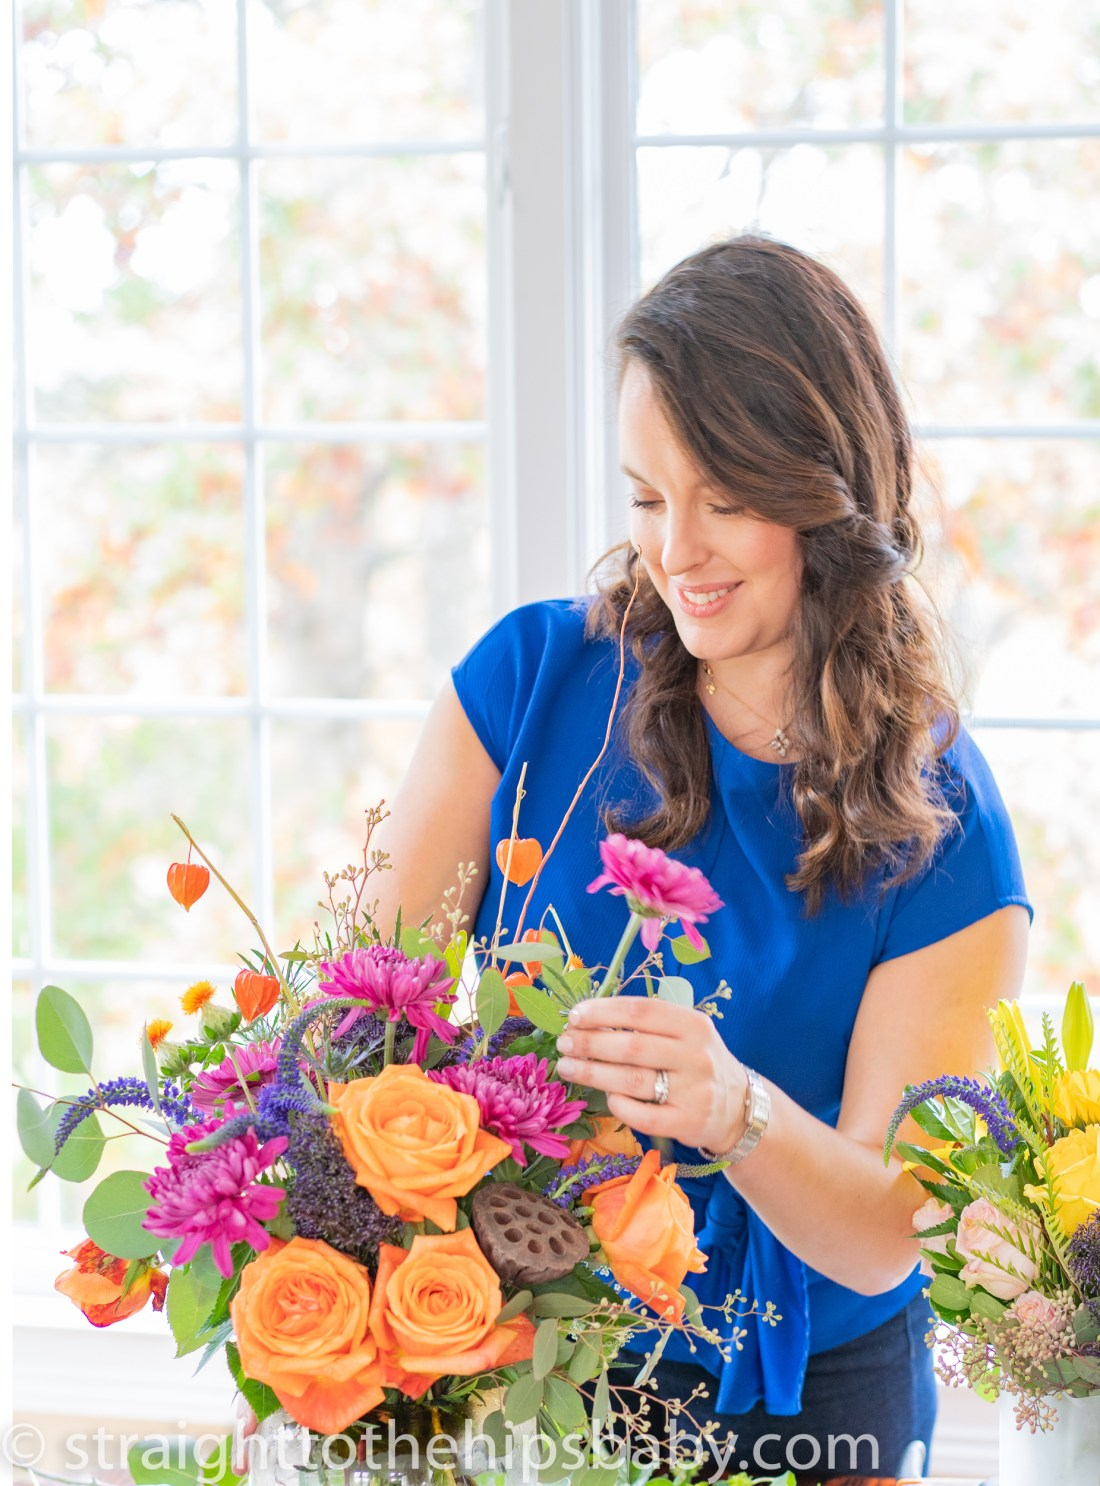 woman in a blue blouse, placing flowers in a vase.